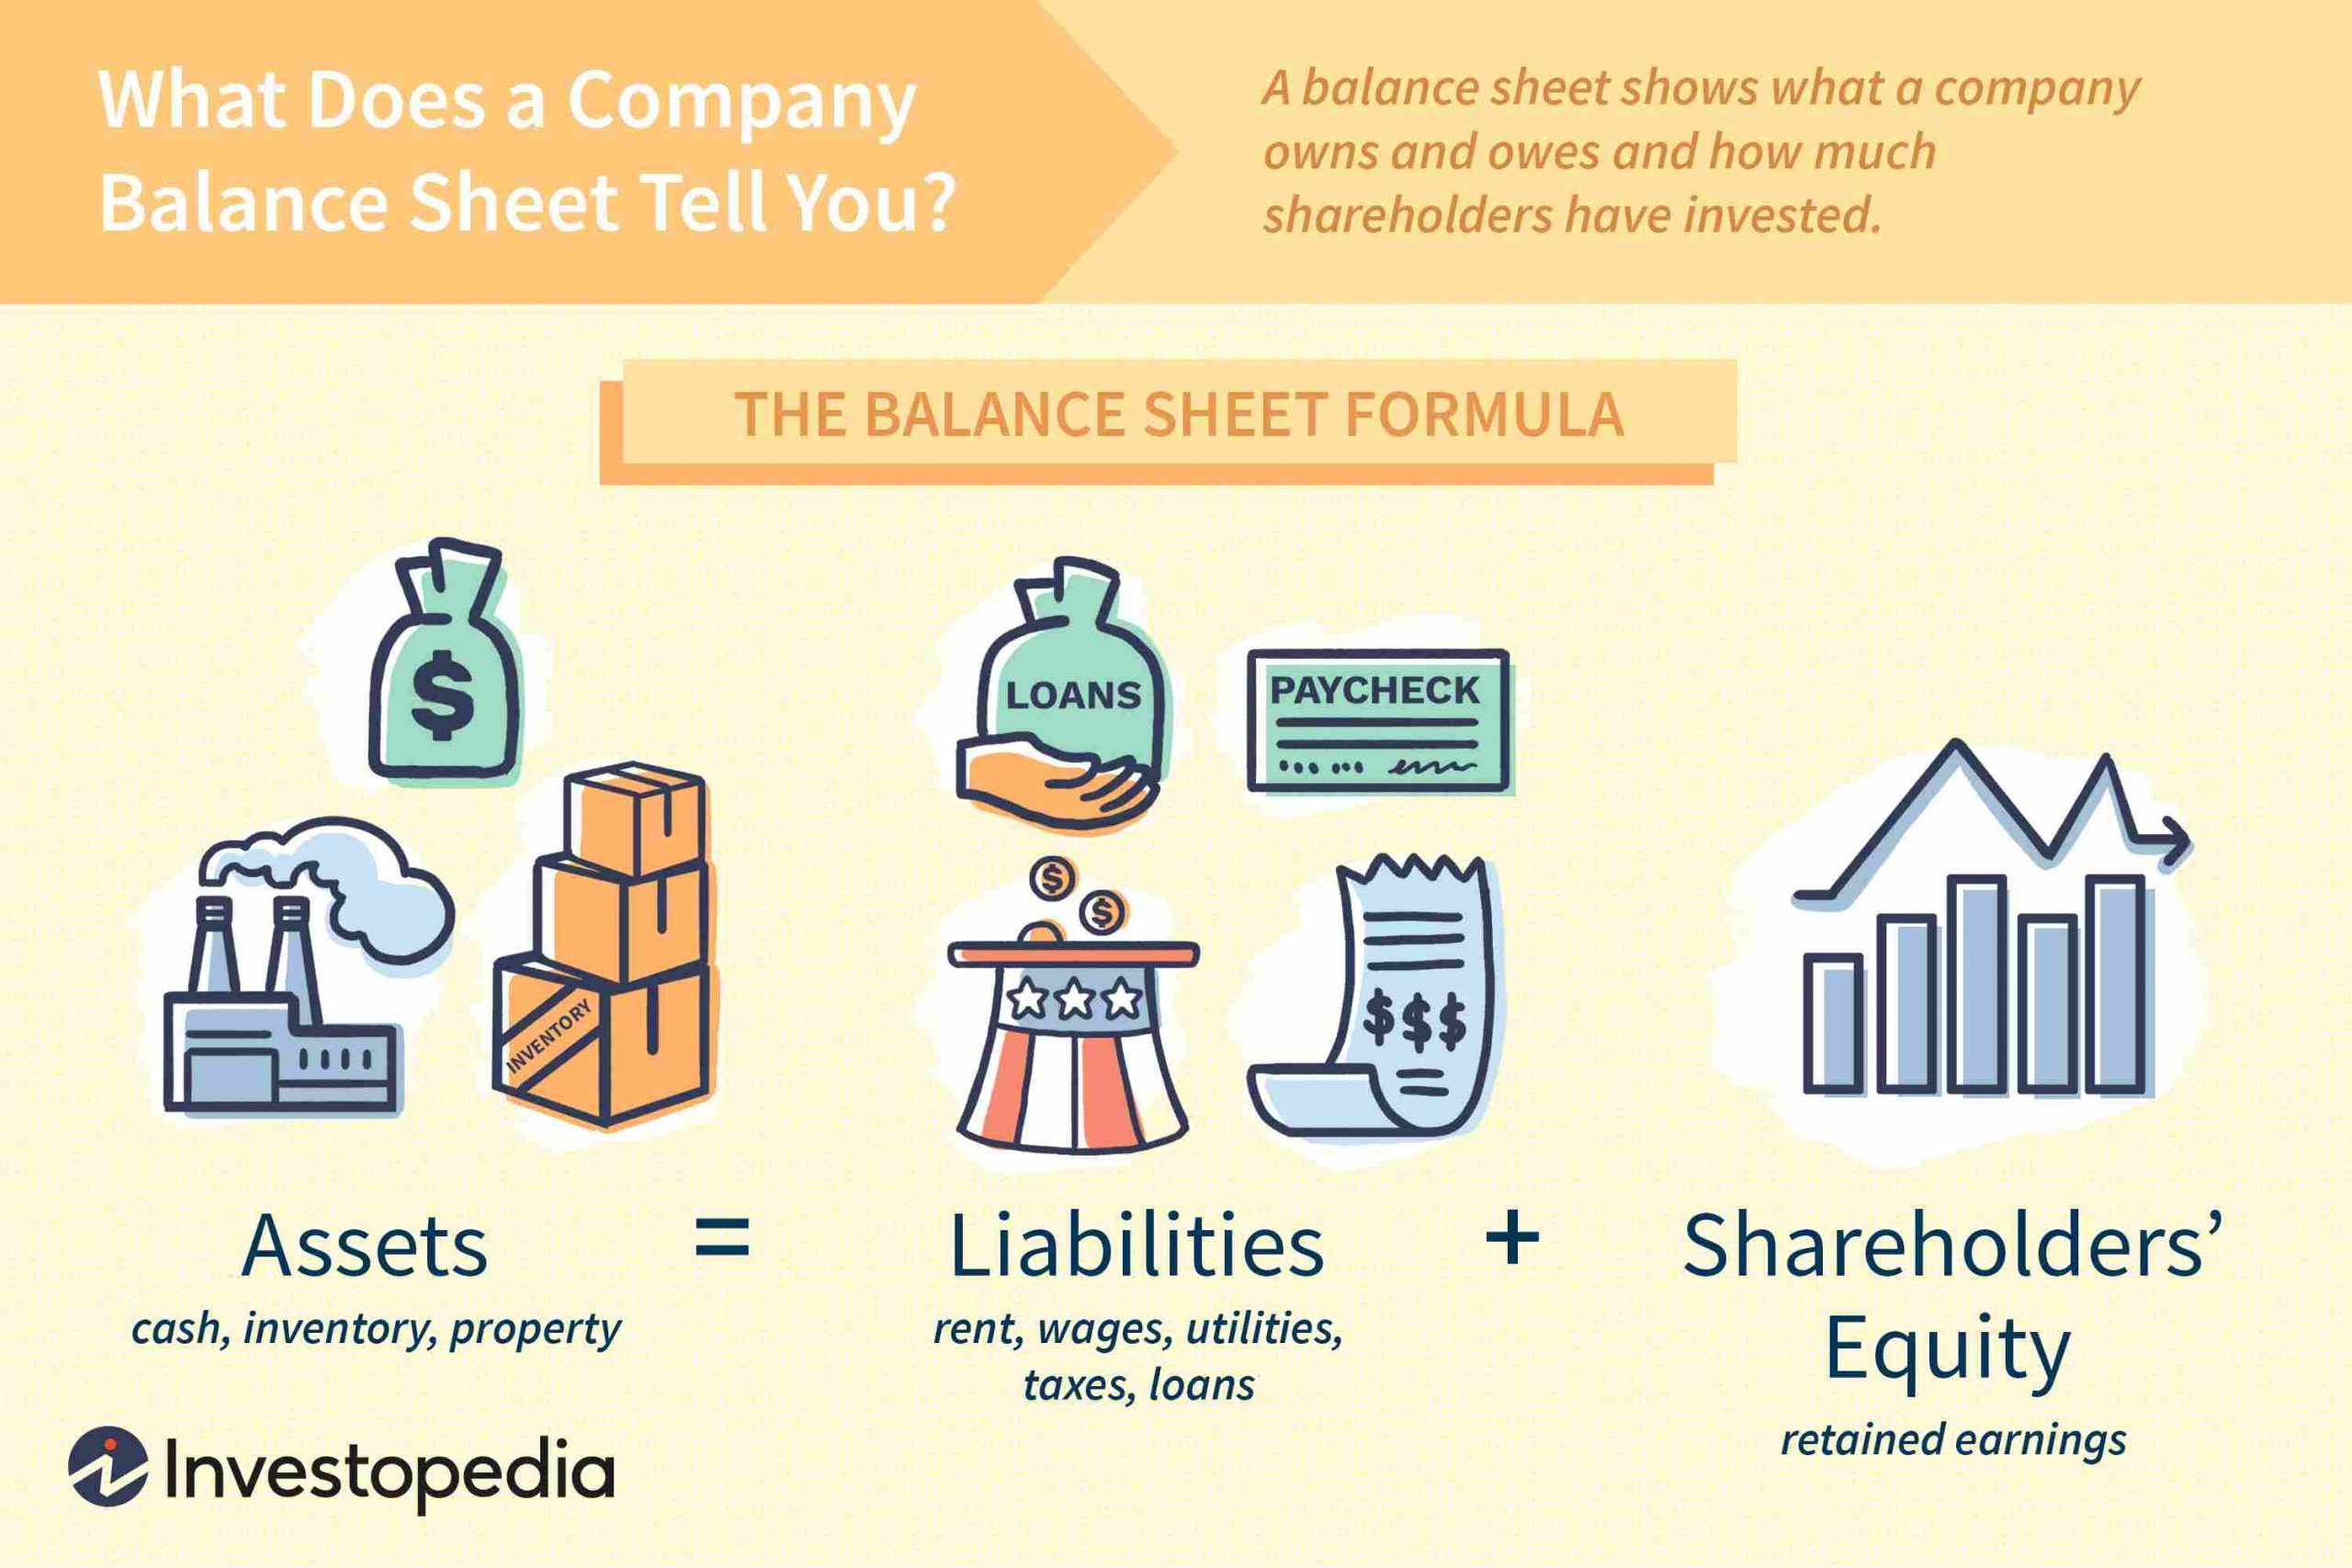 How to Make a Simple Balance Sheet for the Company